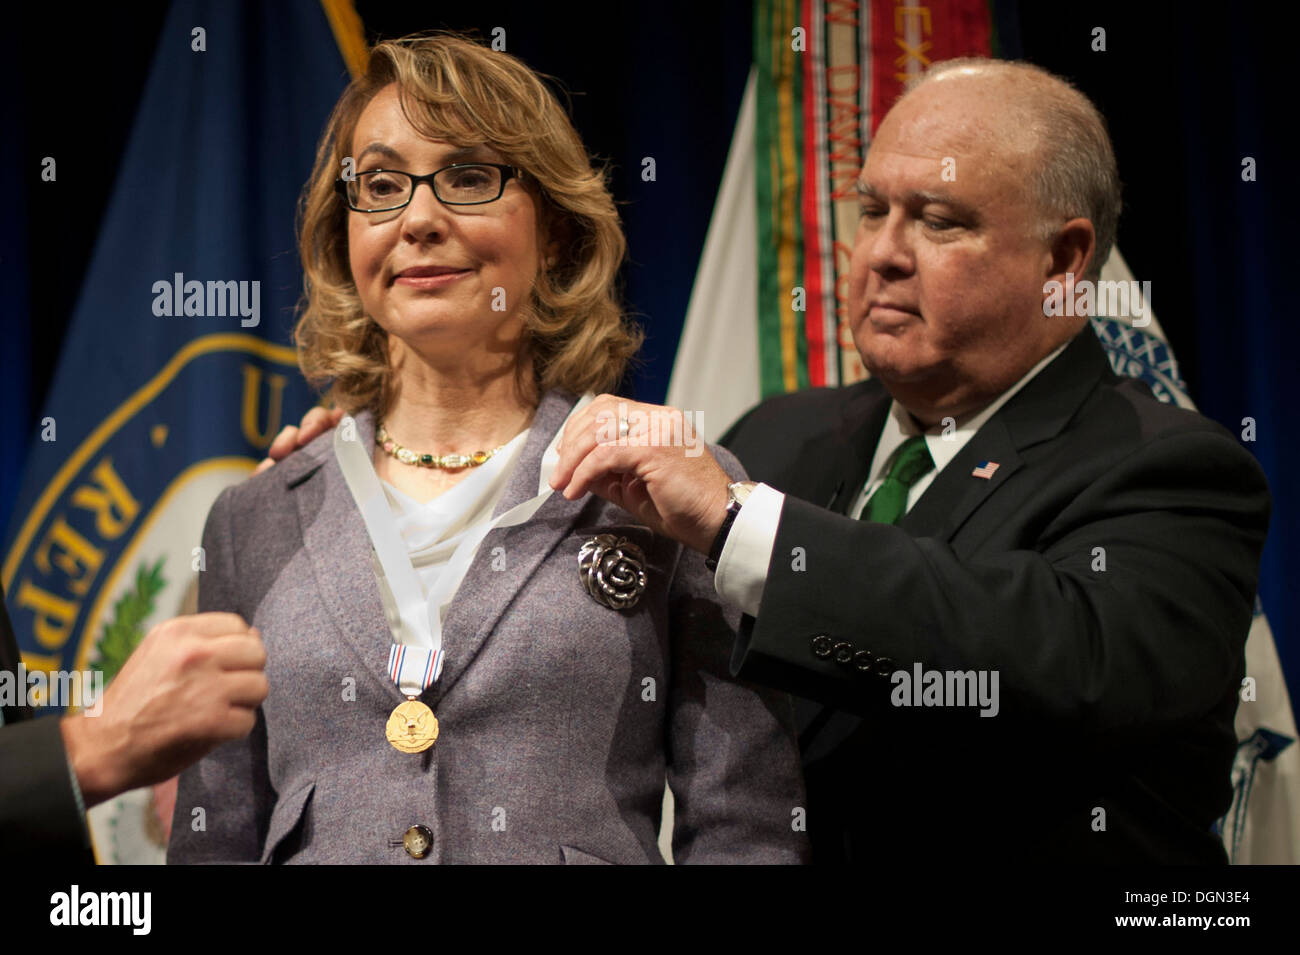 Under Secretary of the Army Joseph W. Westphal presents the Army Decoration for Distinguished Civilian Service to former Rep. Gabrielle 'Gabby' Giffords (Ariz.) for 'outstanding public service and support of the Army's missions', October 10, 2013 at the P - Stock Image